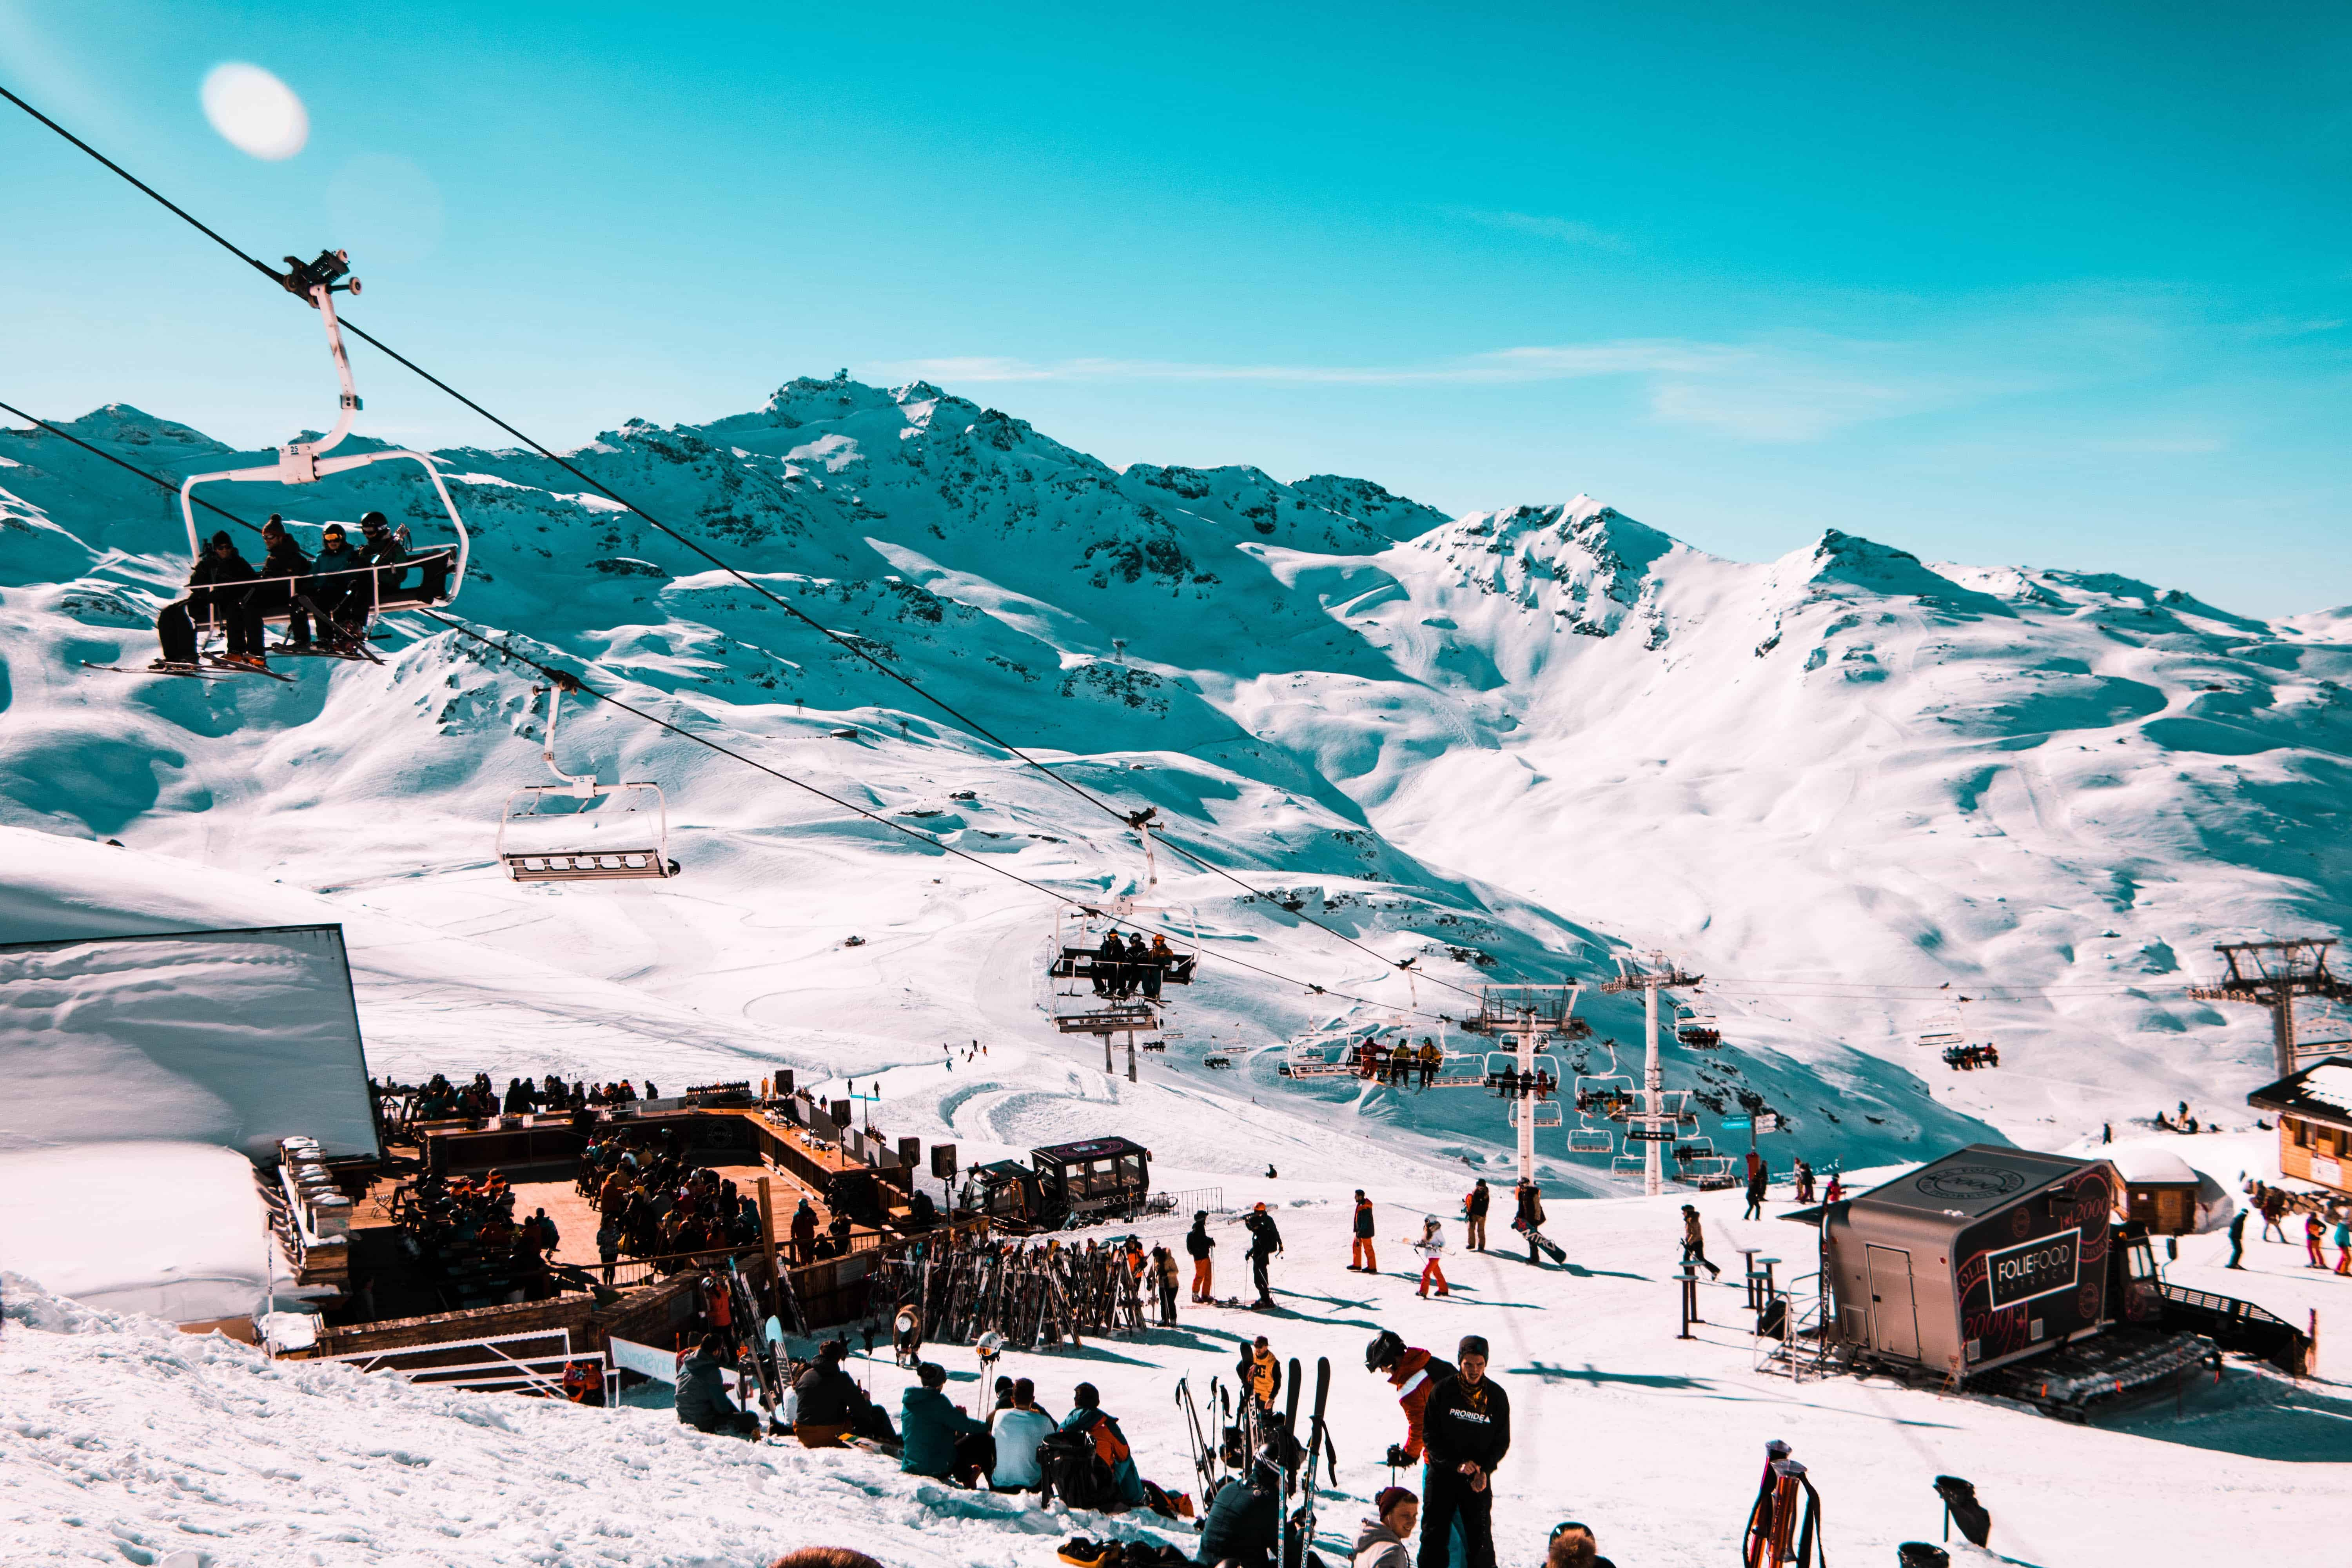 Ski resort with people, lifts and mountains